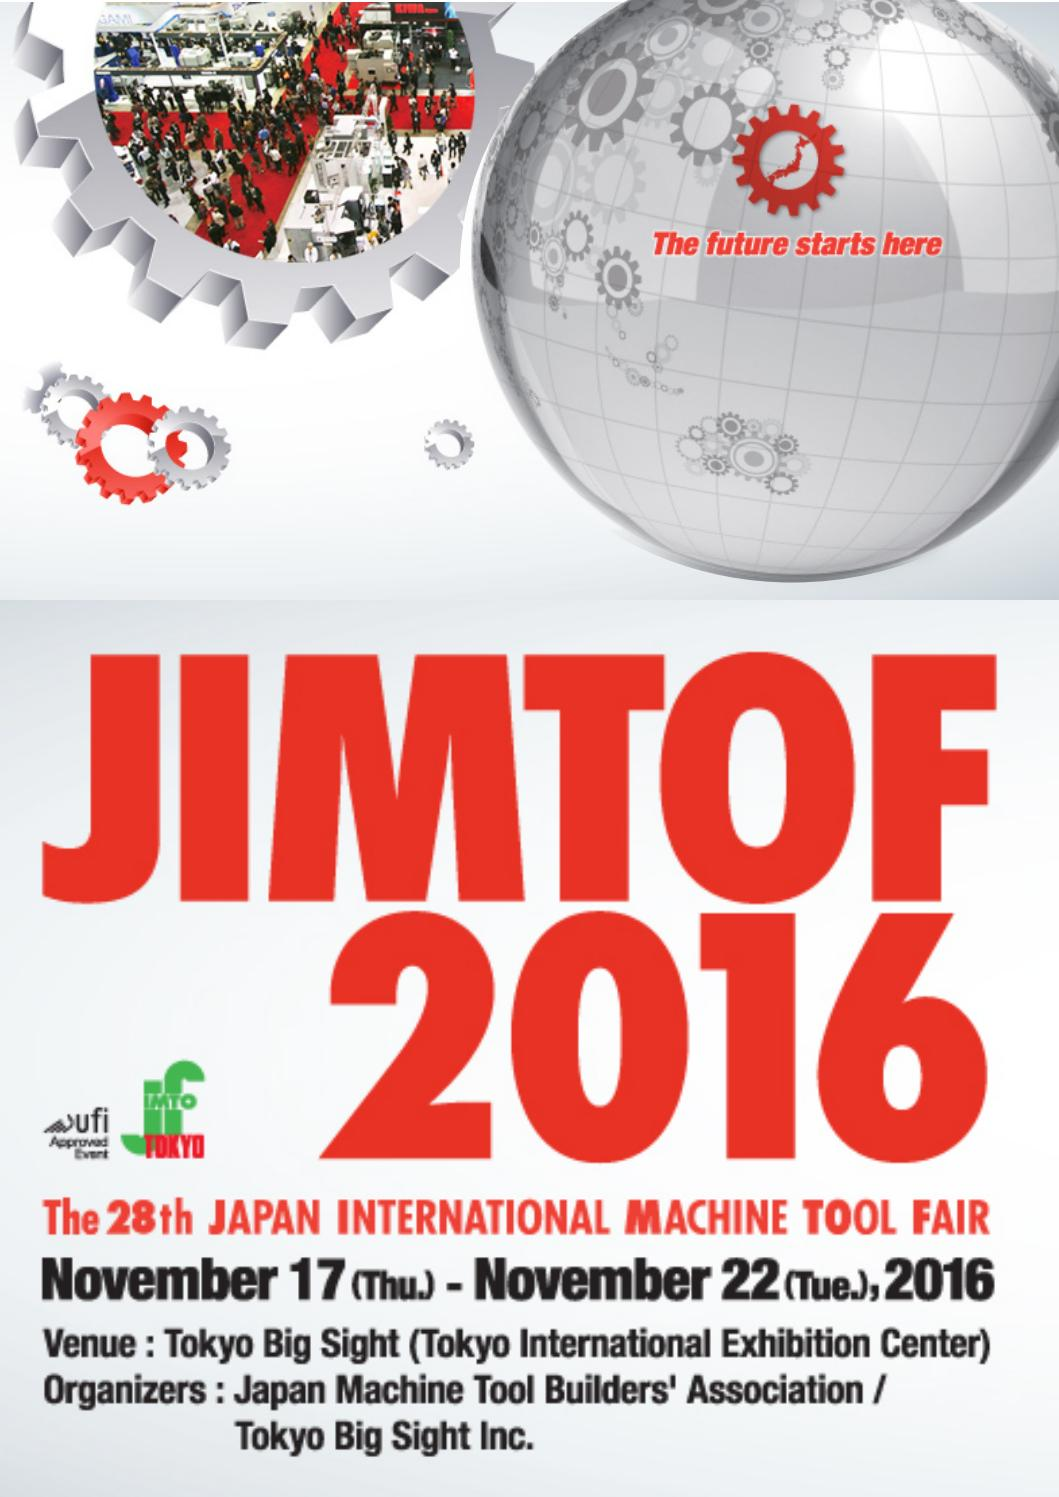 JIMTOF 2016 by publish-industry India - issuu